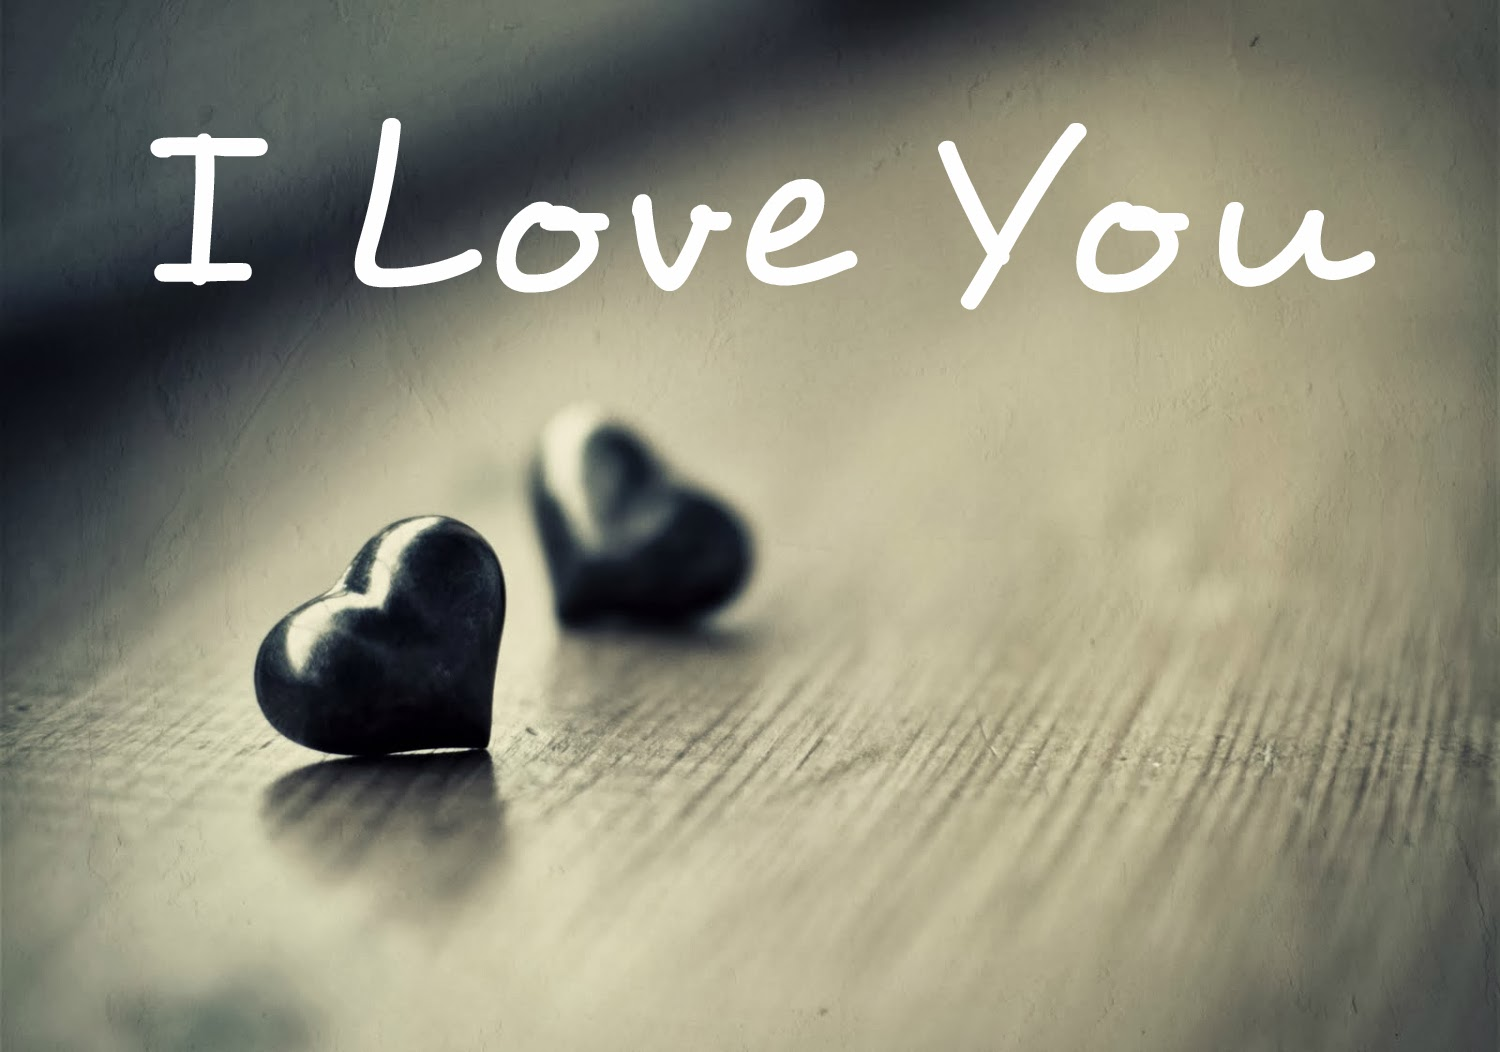 Events News: Happy Valentines Day I Love You Wallpaper HD ...